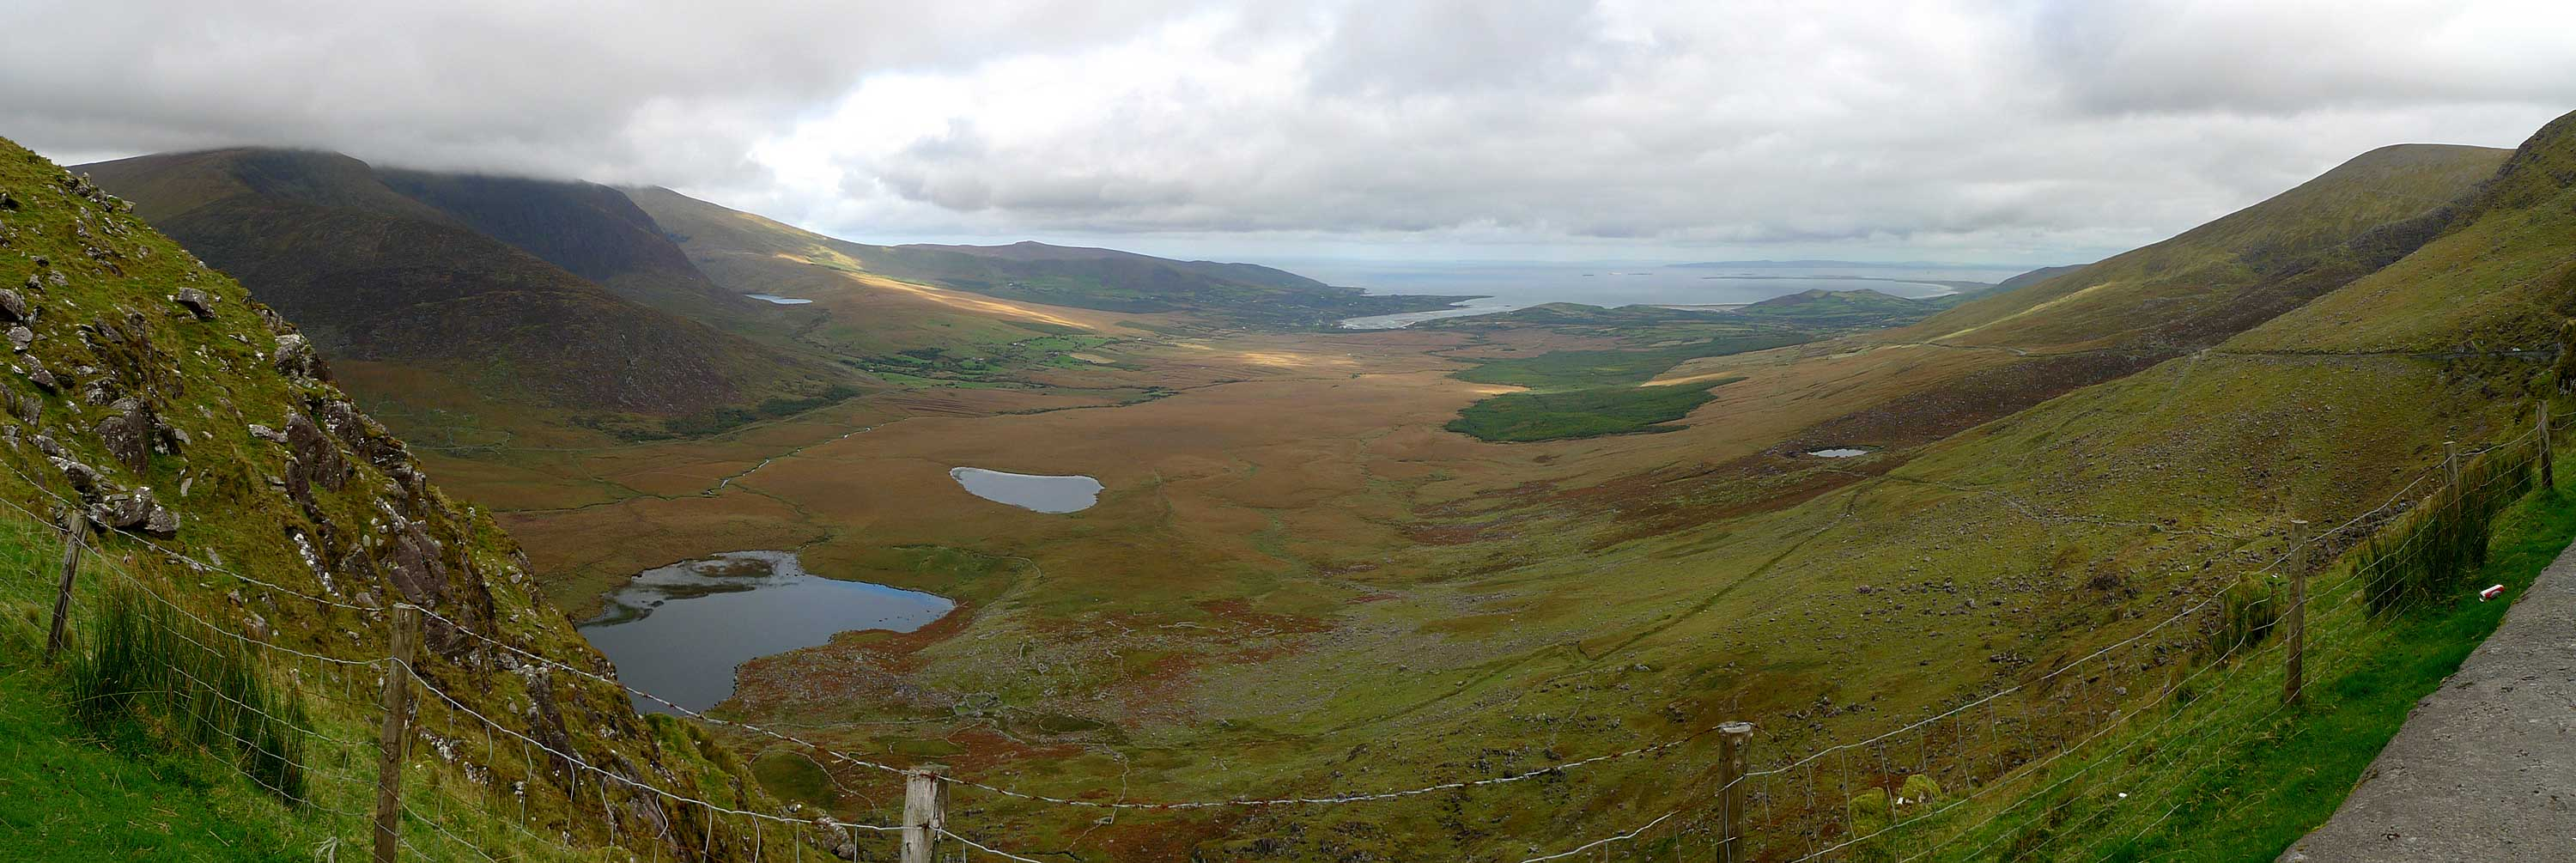 Dingle Peninsula, looking to north coast from pass